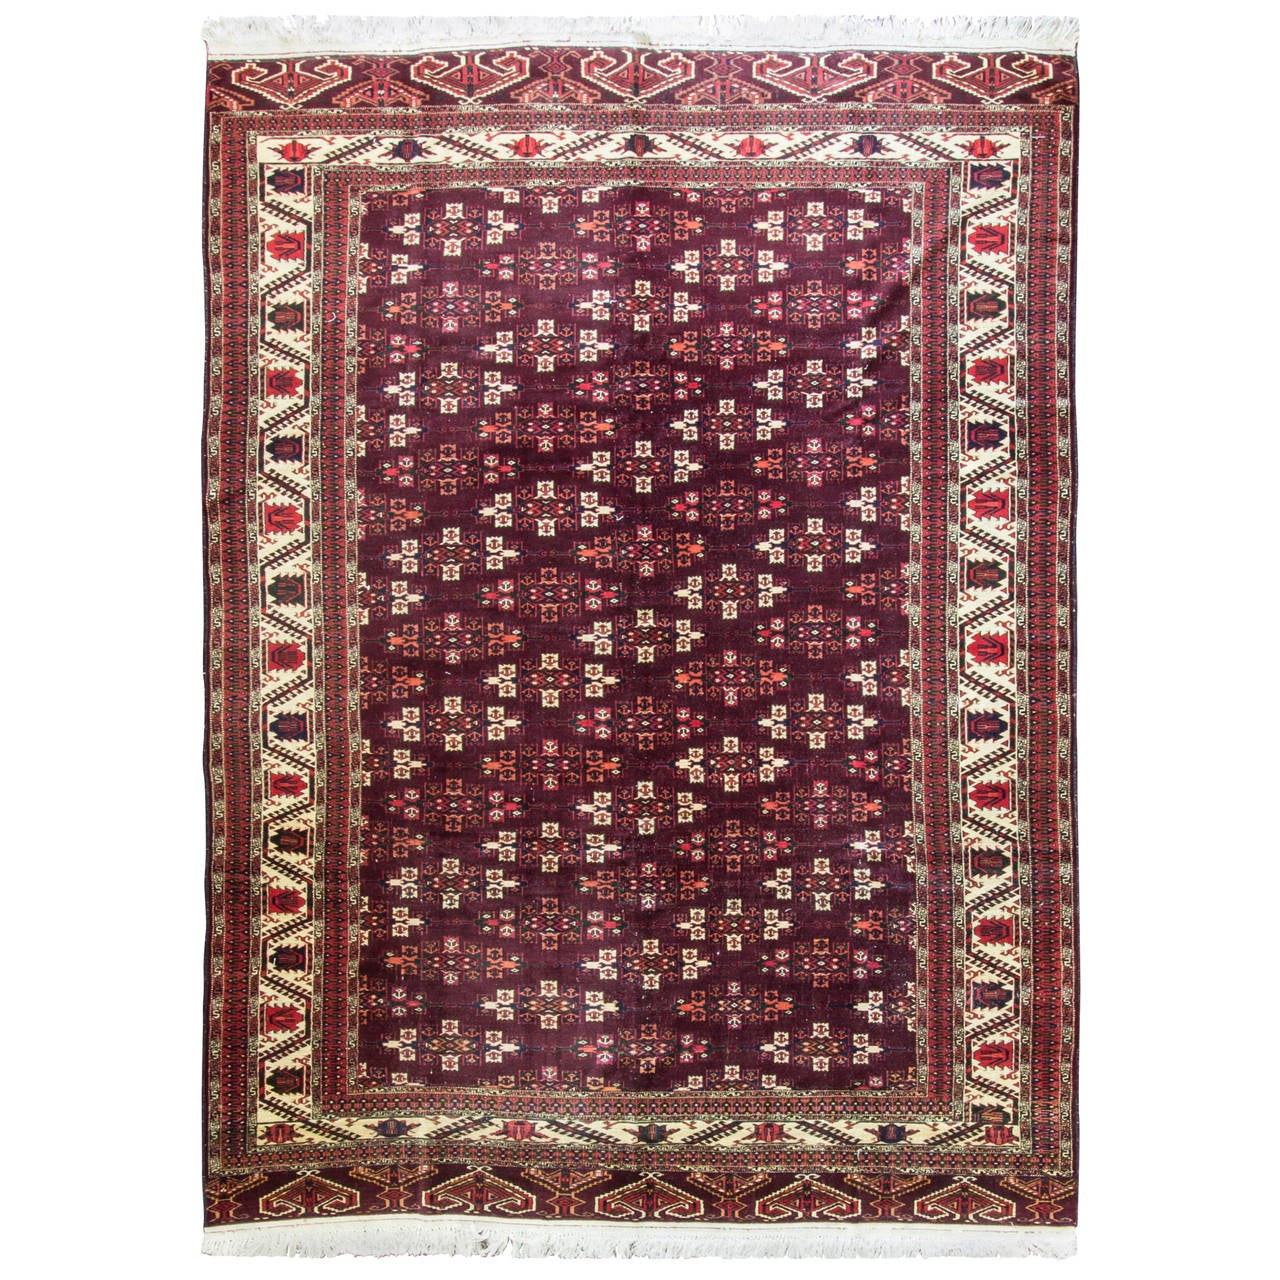 Yomut Turkmen Carpet At 1stdibs